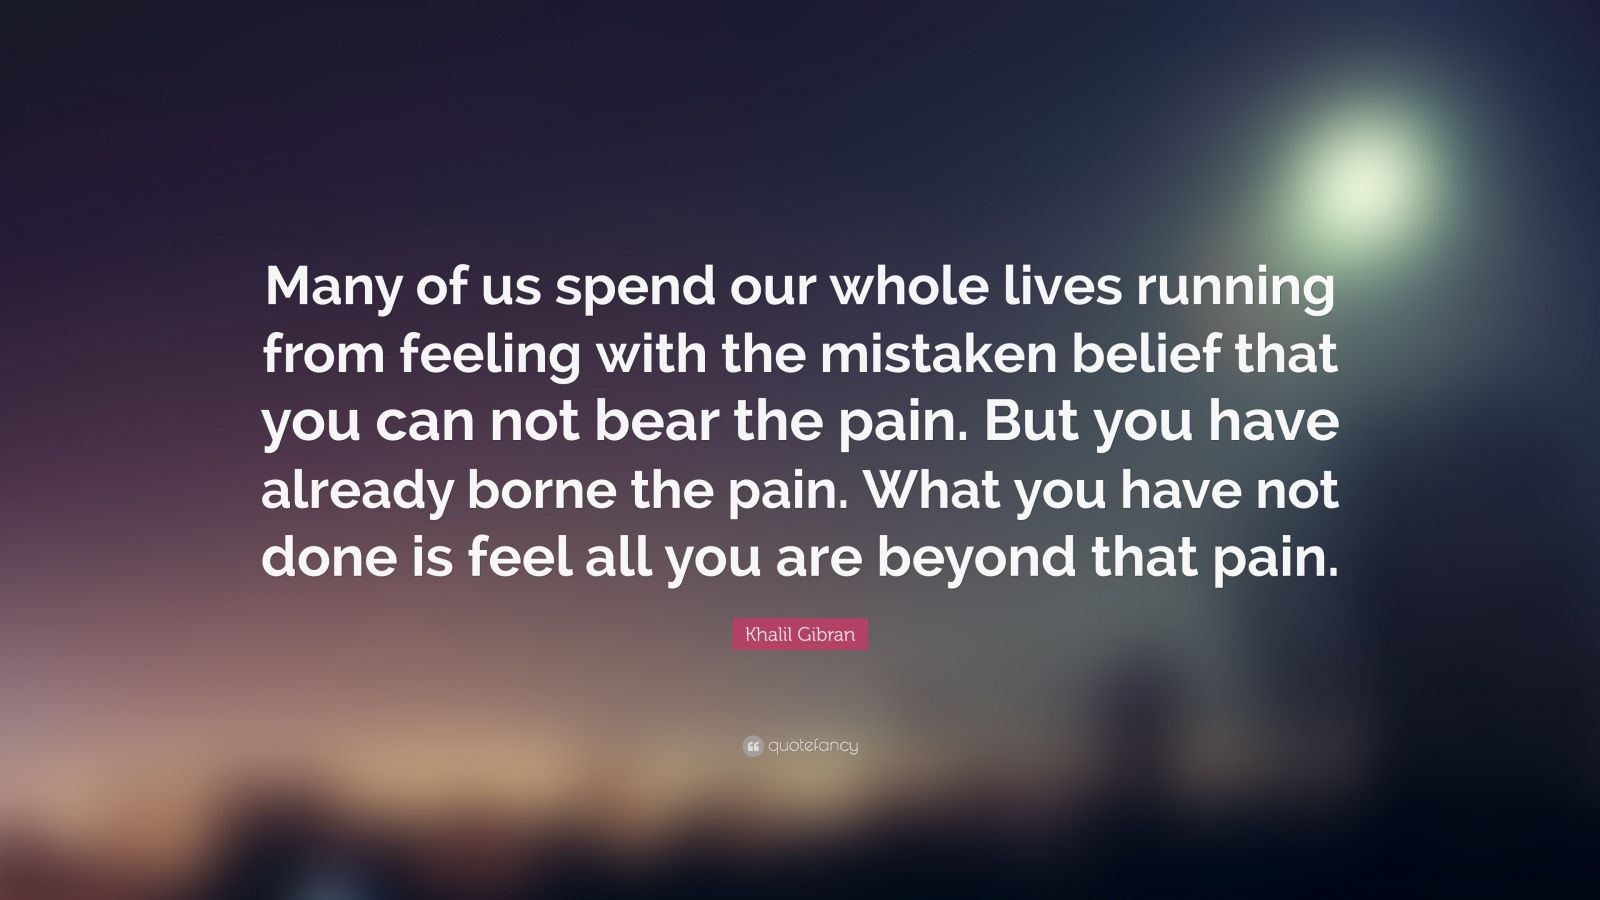 "Khalil Gibran Quote: ""Many of us spend our whole lives running from feeling with the mistaken belief that you can not bear the pain. But you have already borne the pain. What you have not done is feel all you are beyond that pain."""